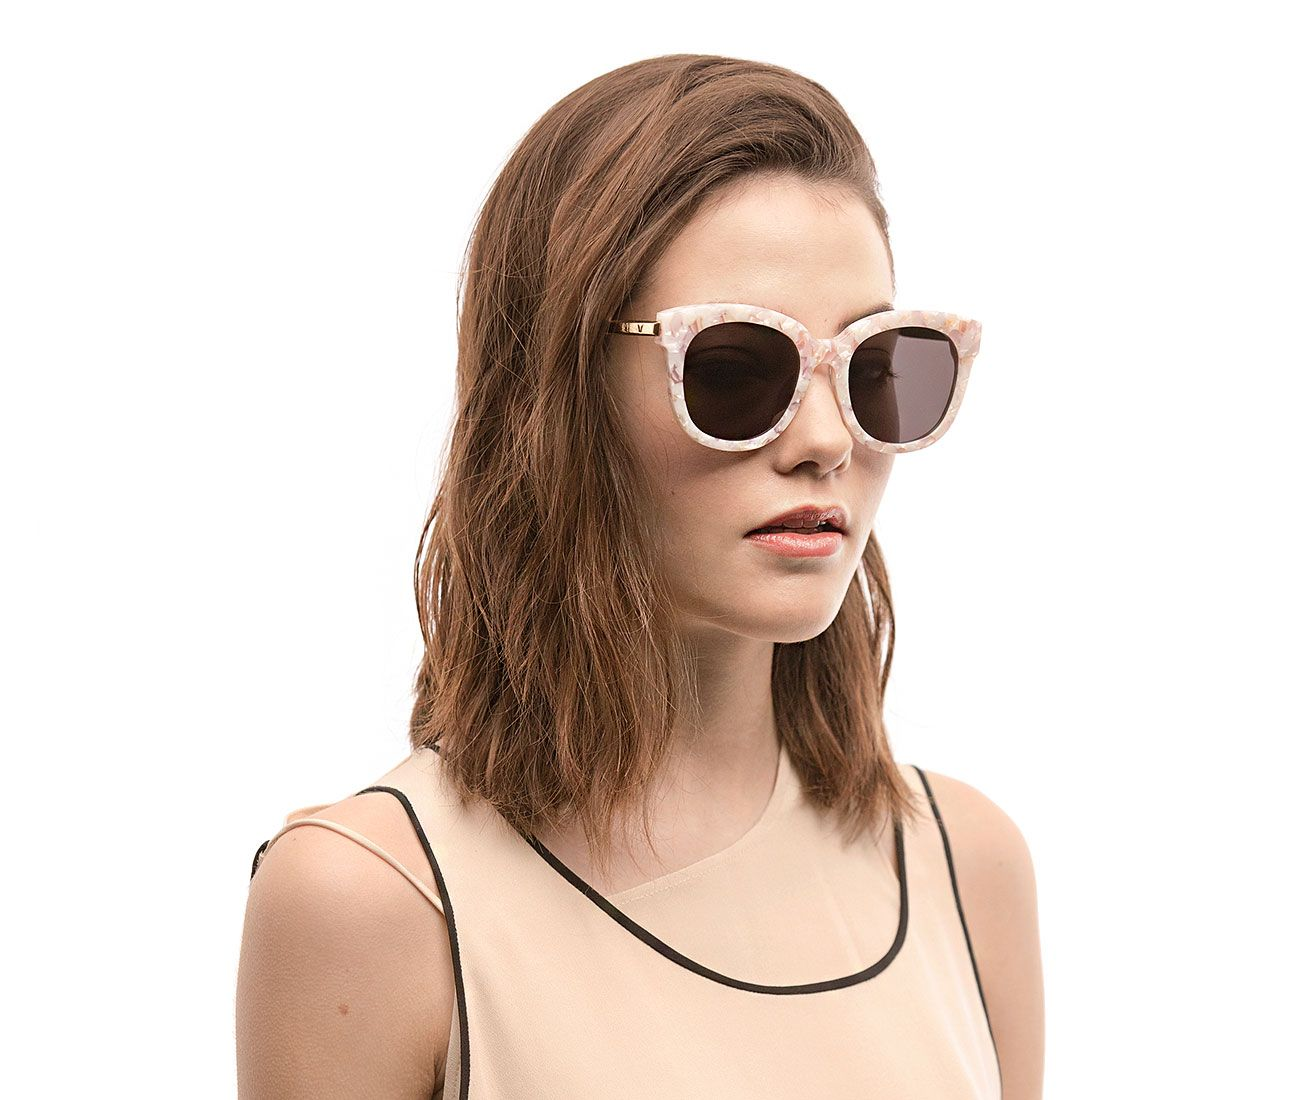 090e5a3f3a1b8 GENTLE MONSTER - CUBA 502 P5 Cat Eye Sunglasses